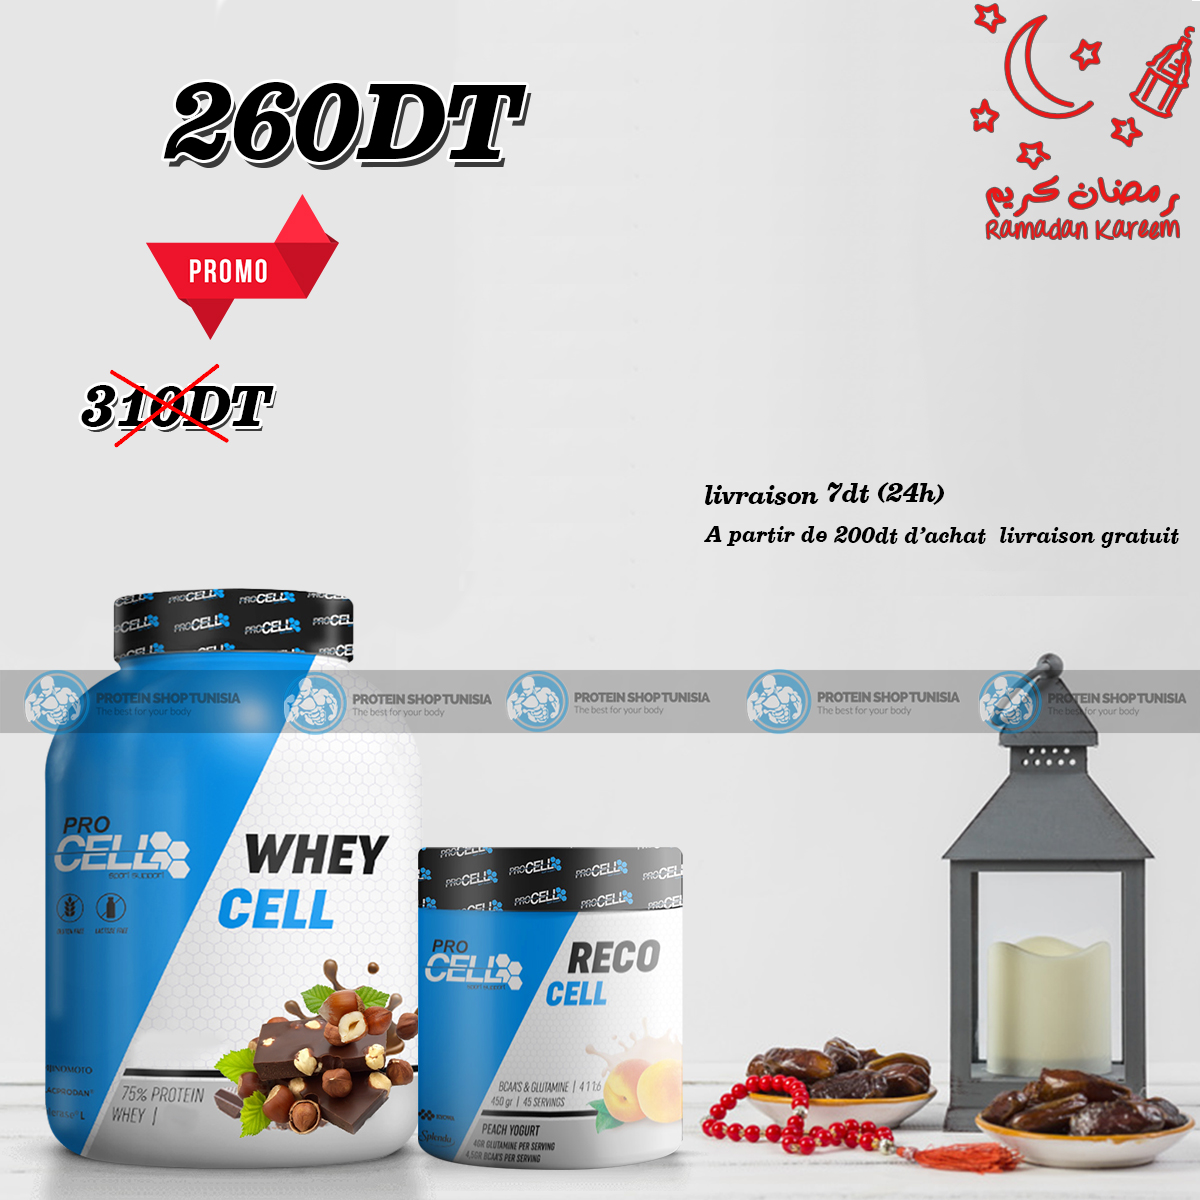 whey cell reco cell